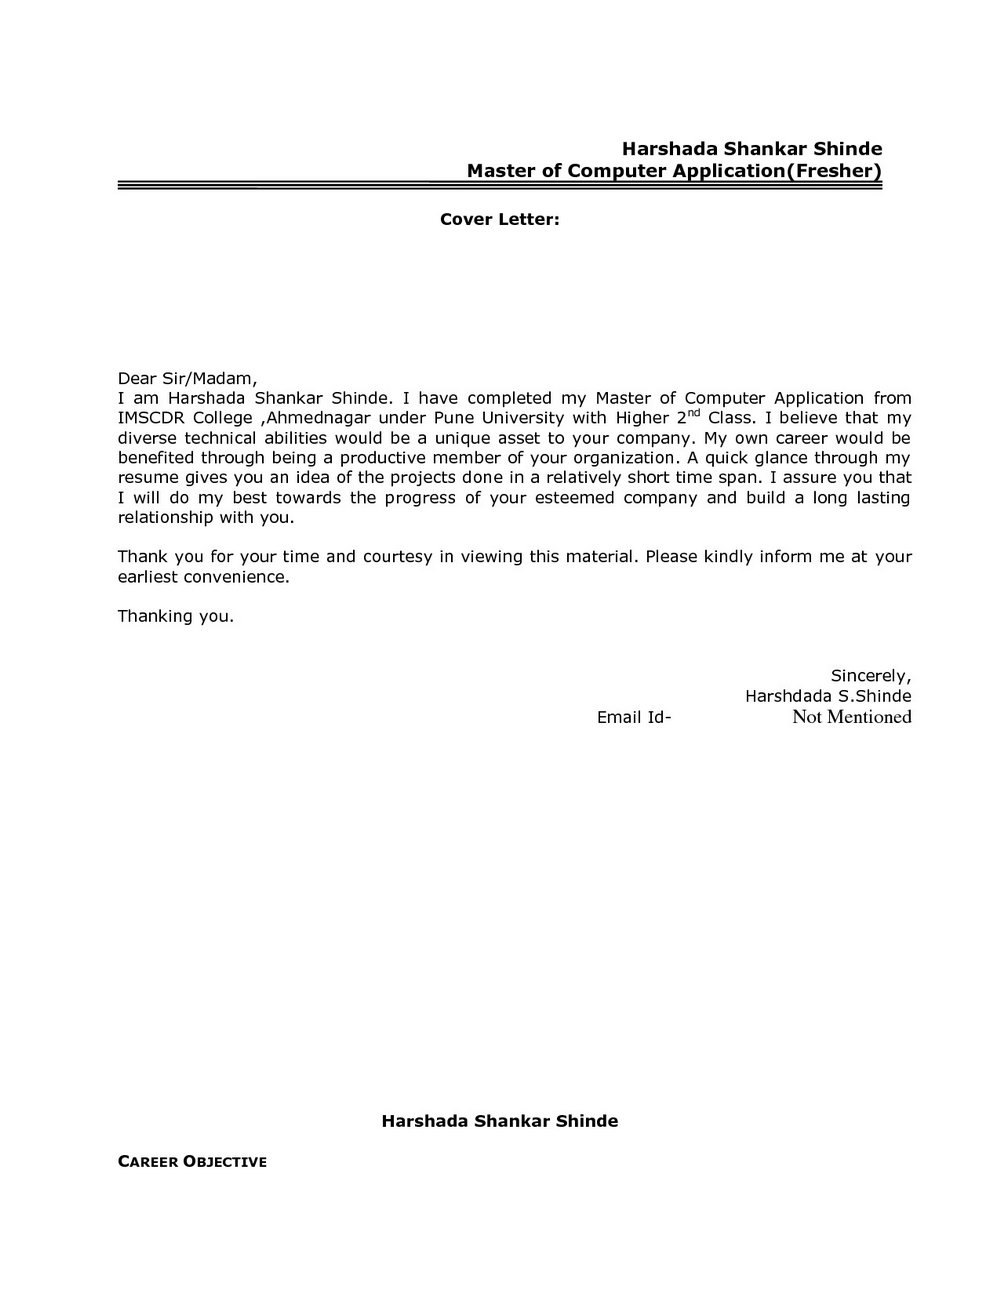 Sample Cover Letter For Freshers Pdf Free Download